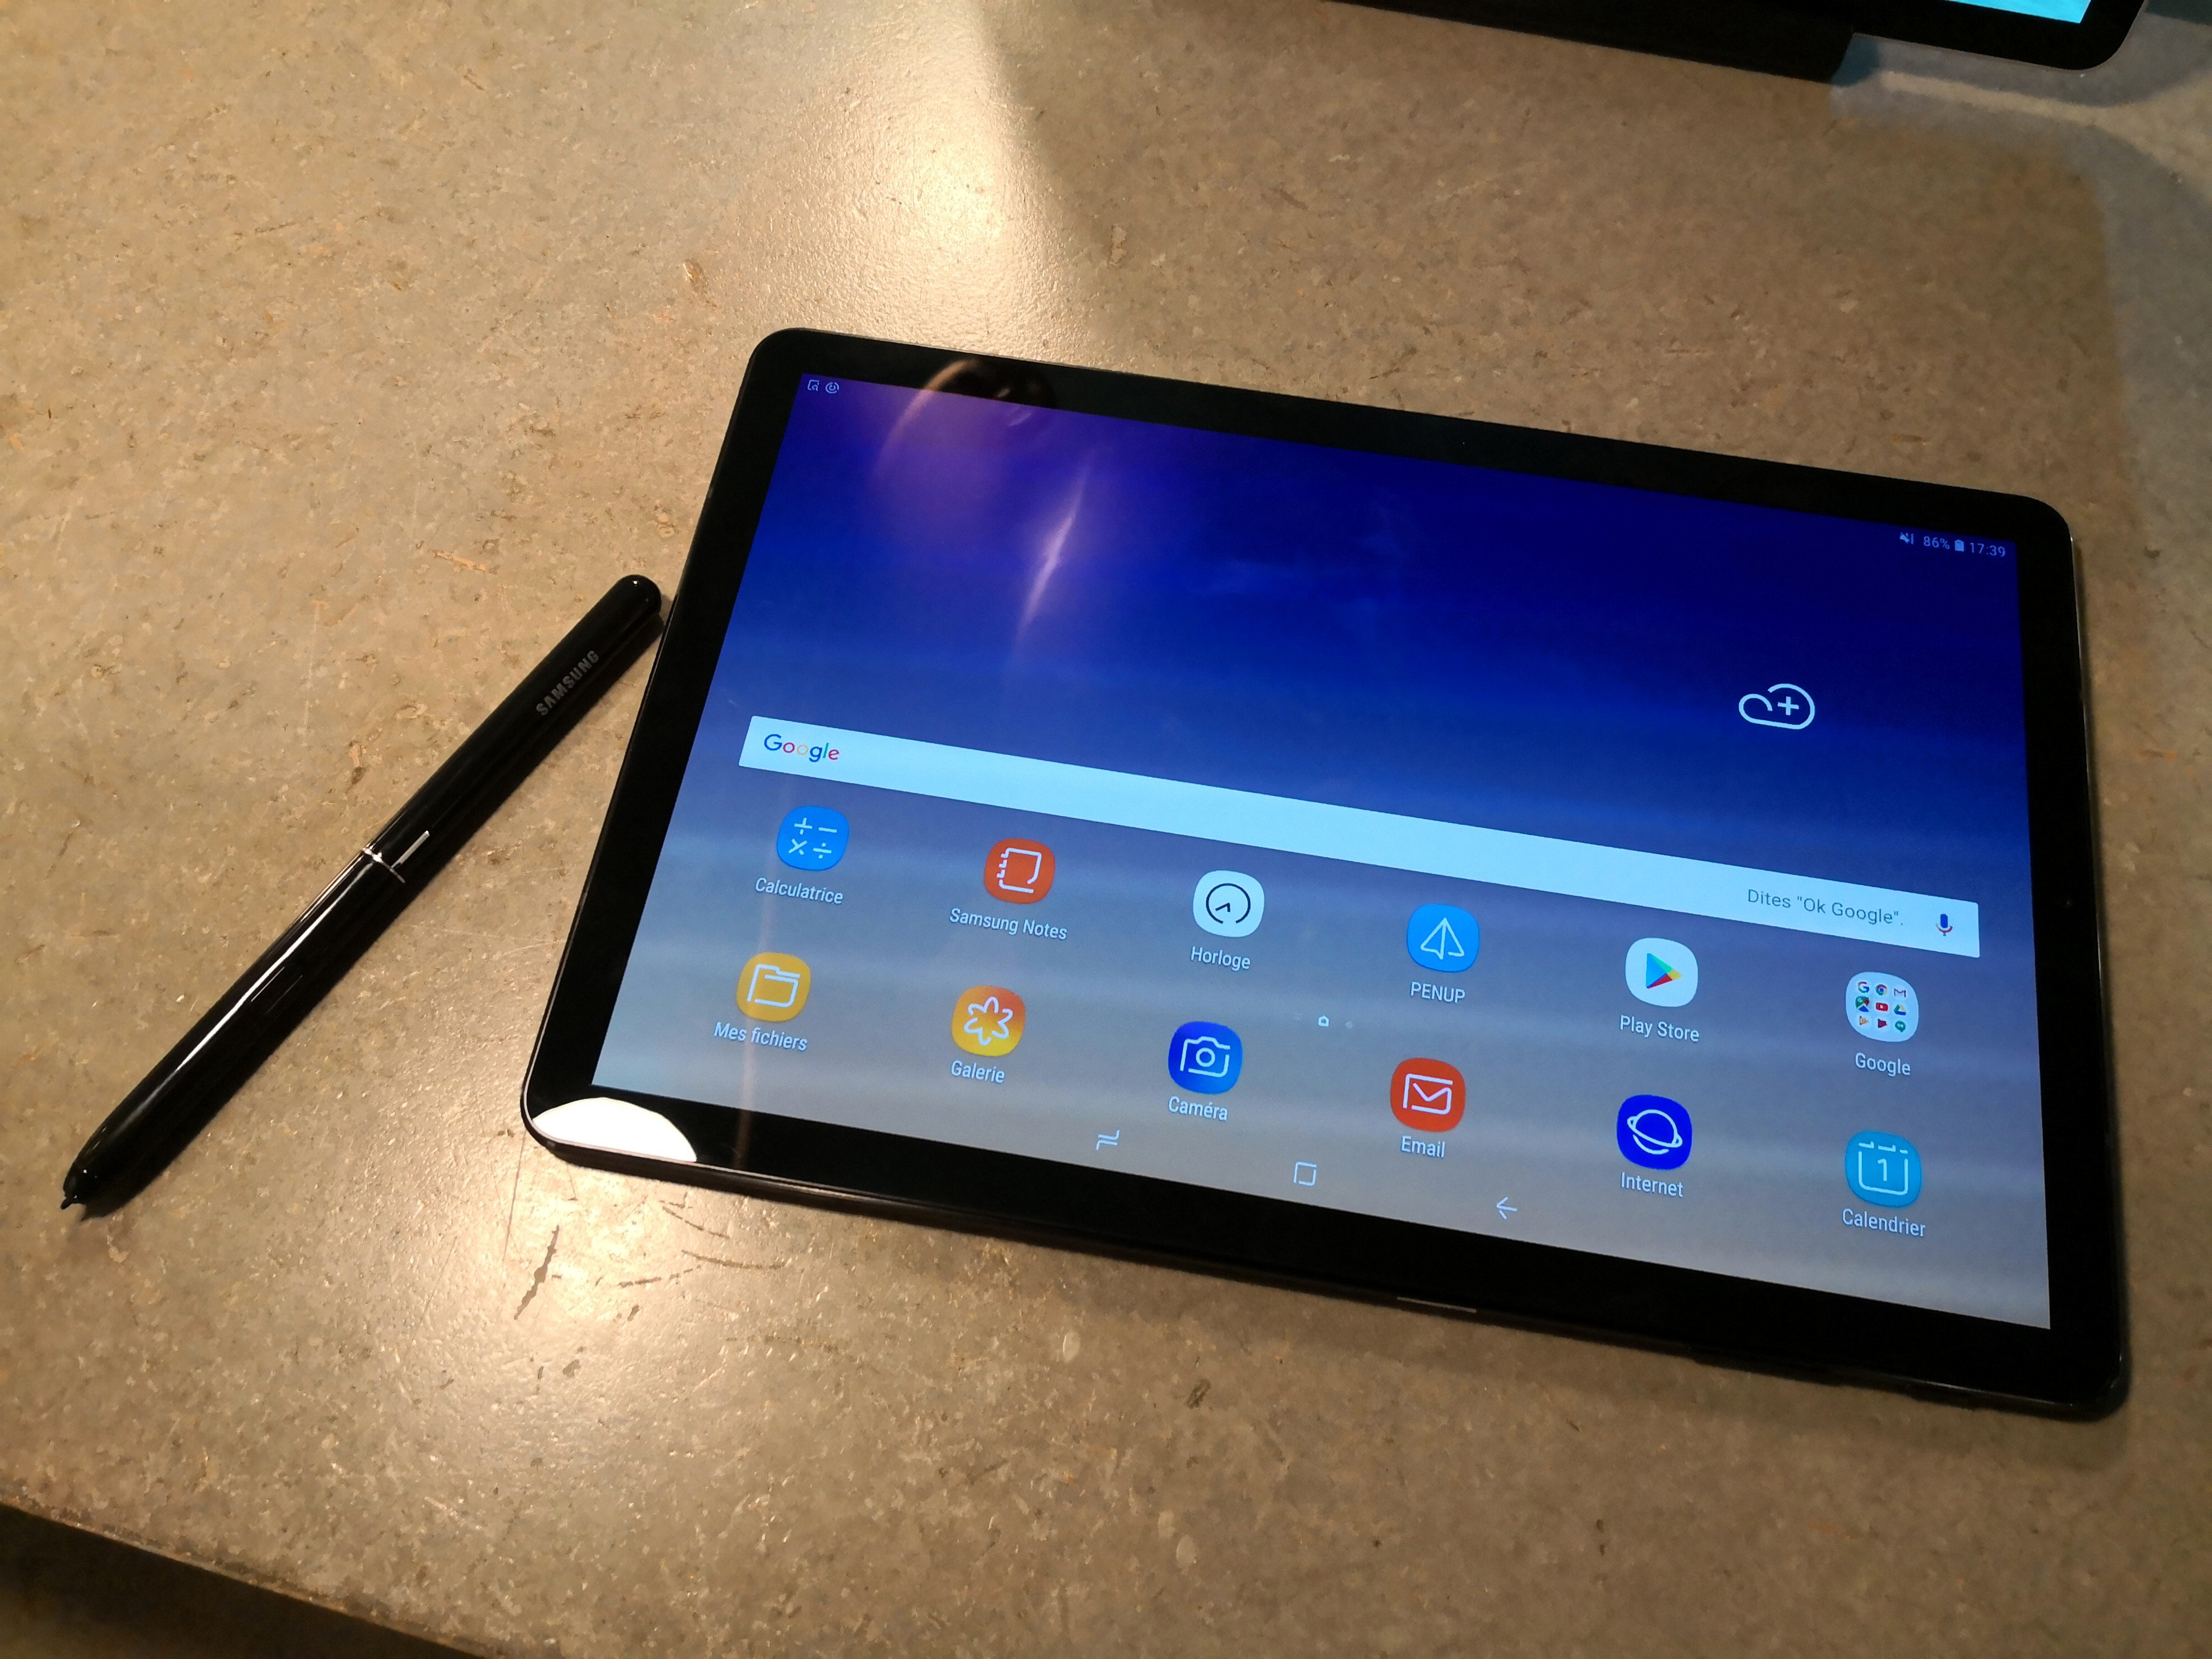 samsung galaxy tab s4 officialis e mode dex natif design pur voici nos photos de la. Black Bedroom Furniture Sets. Home Design Ideas